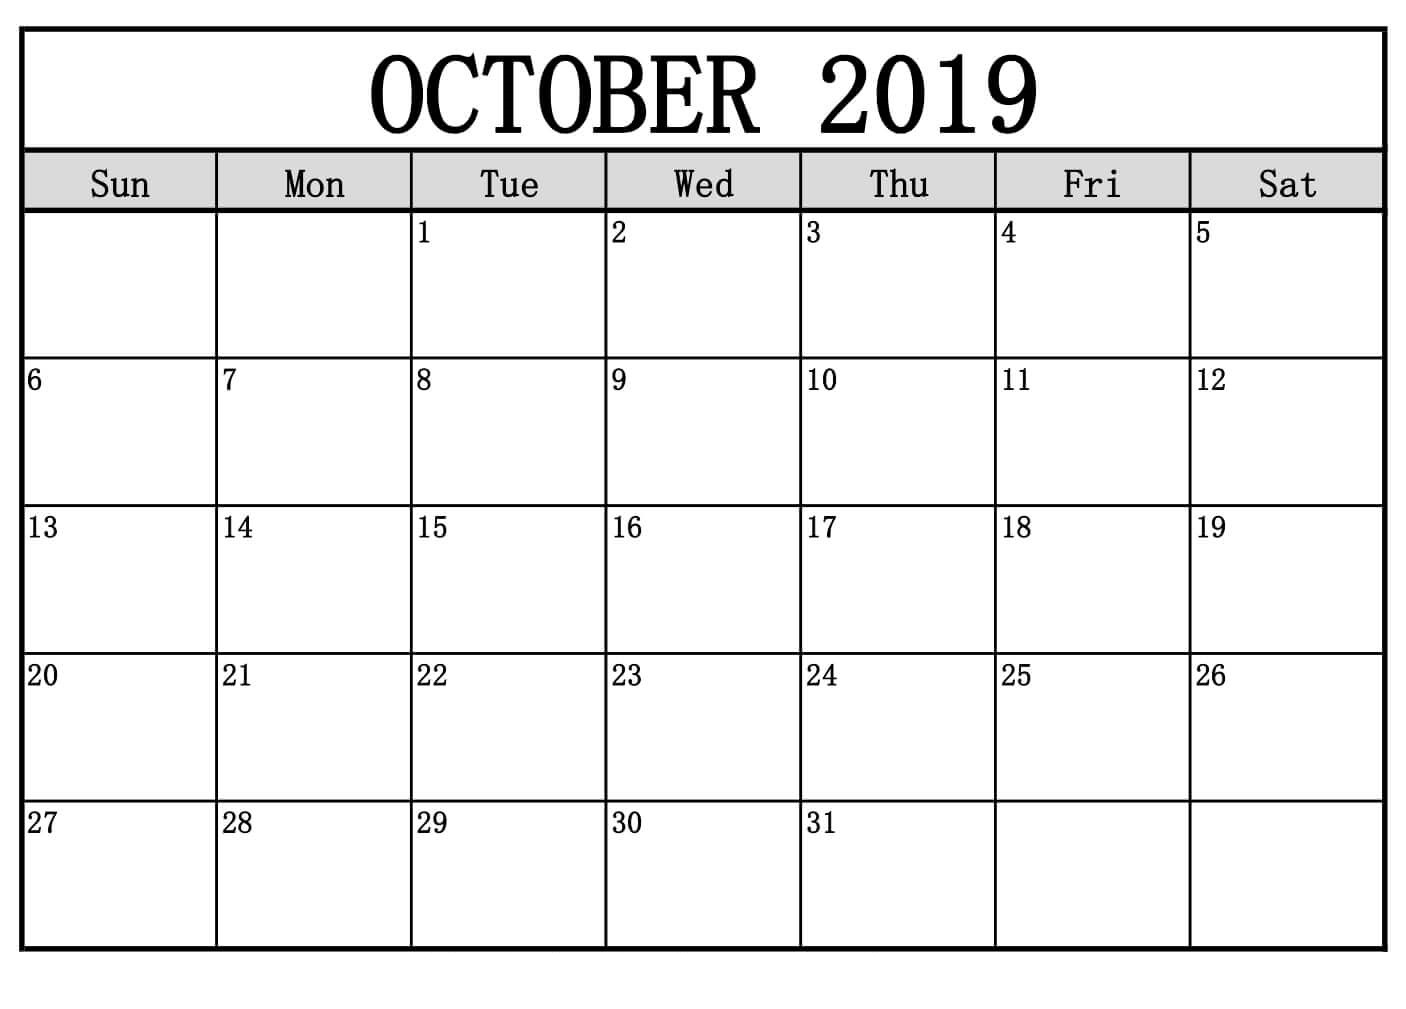 photograph relating to Free Printable October Calendar called Oct 2019 Calendar PDF Phrase Excel Templates